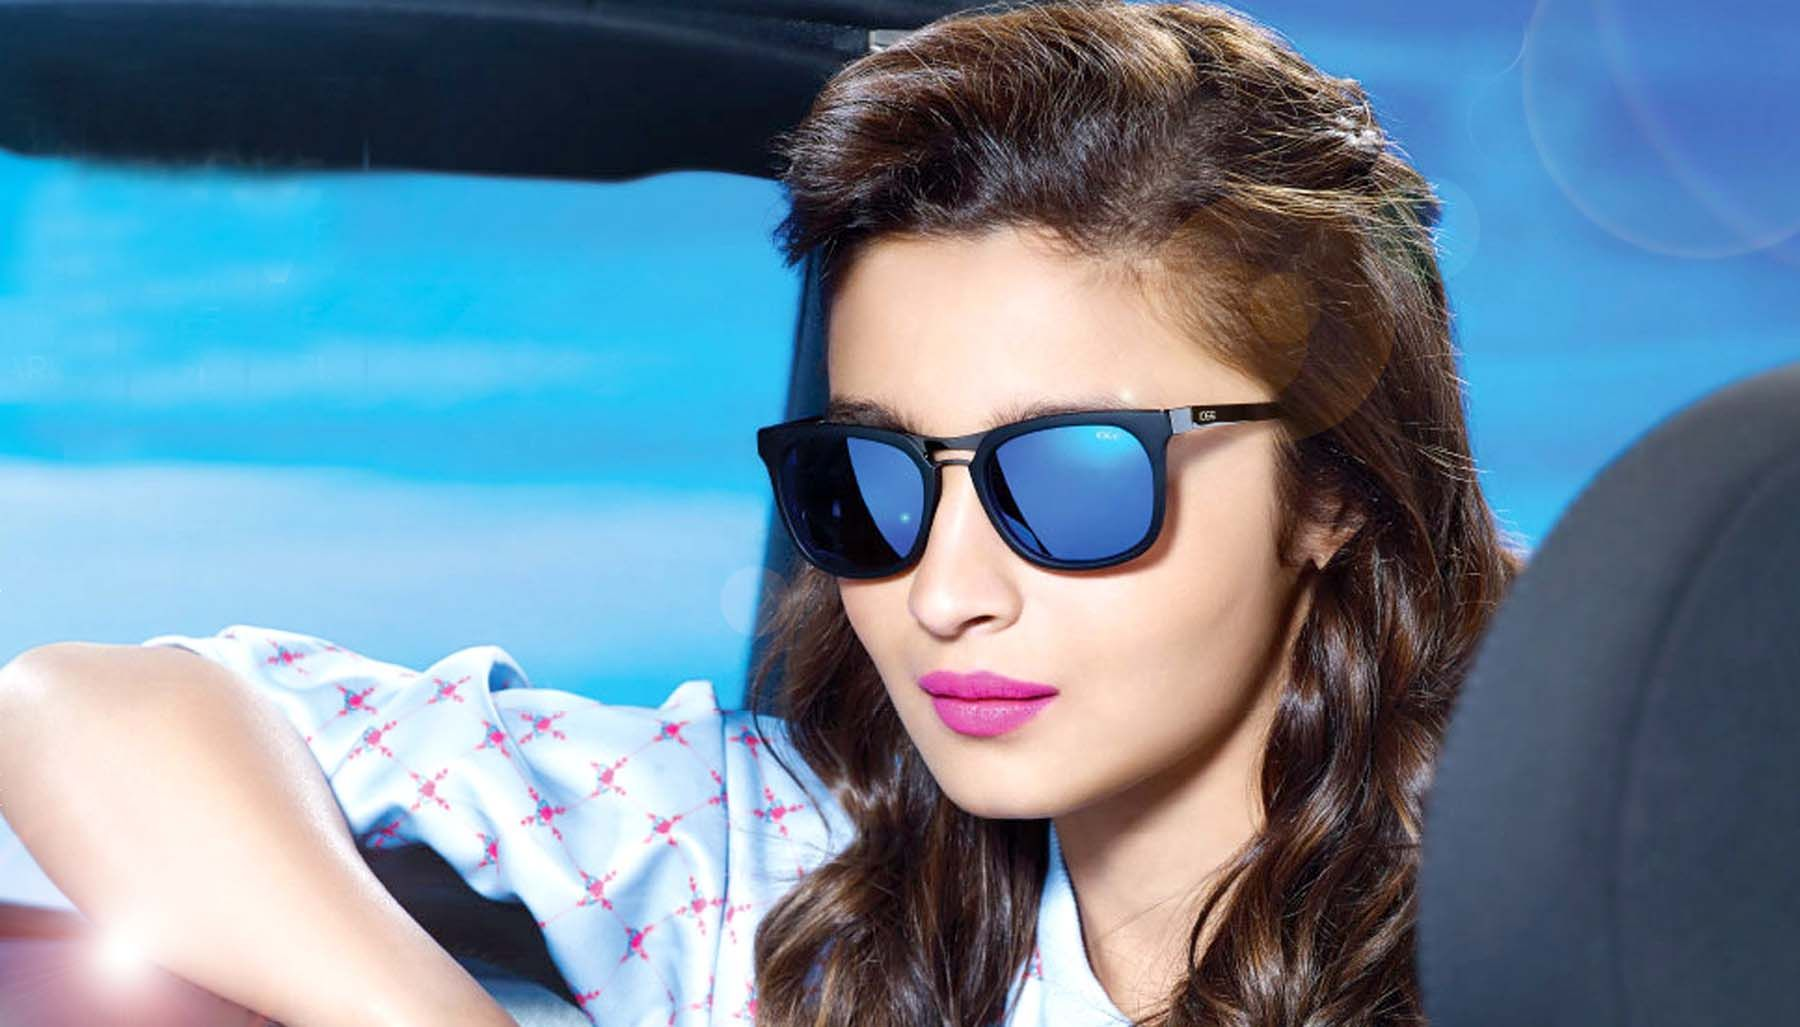 alia bhatt new wallpapers ultra hd 4k images | to die for beauty